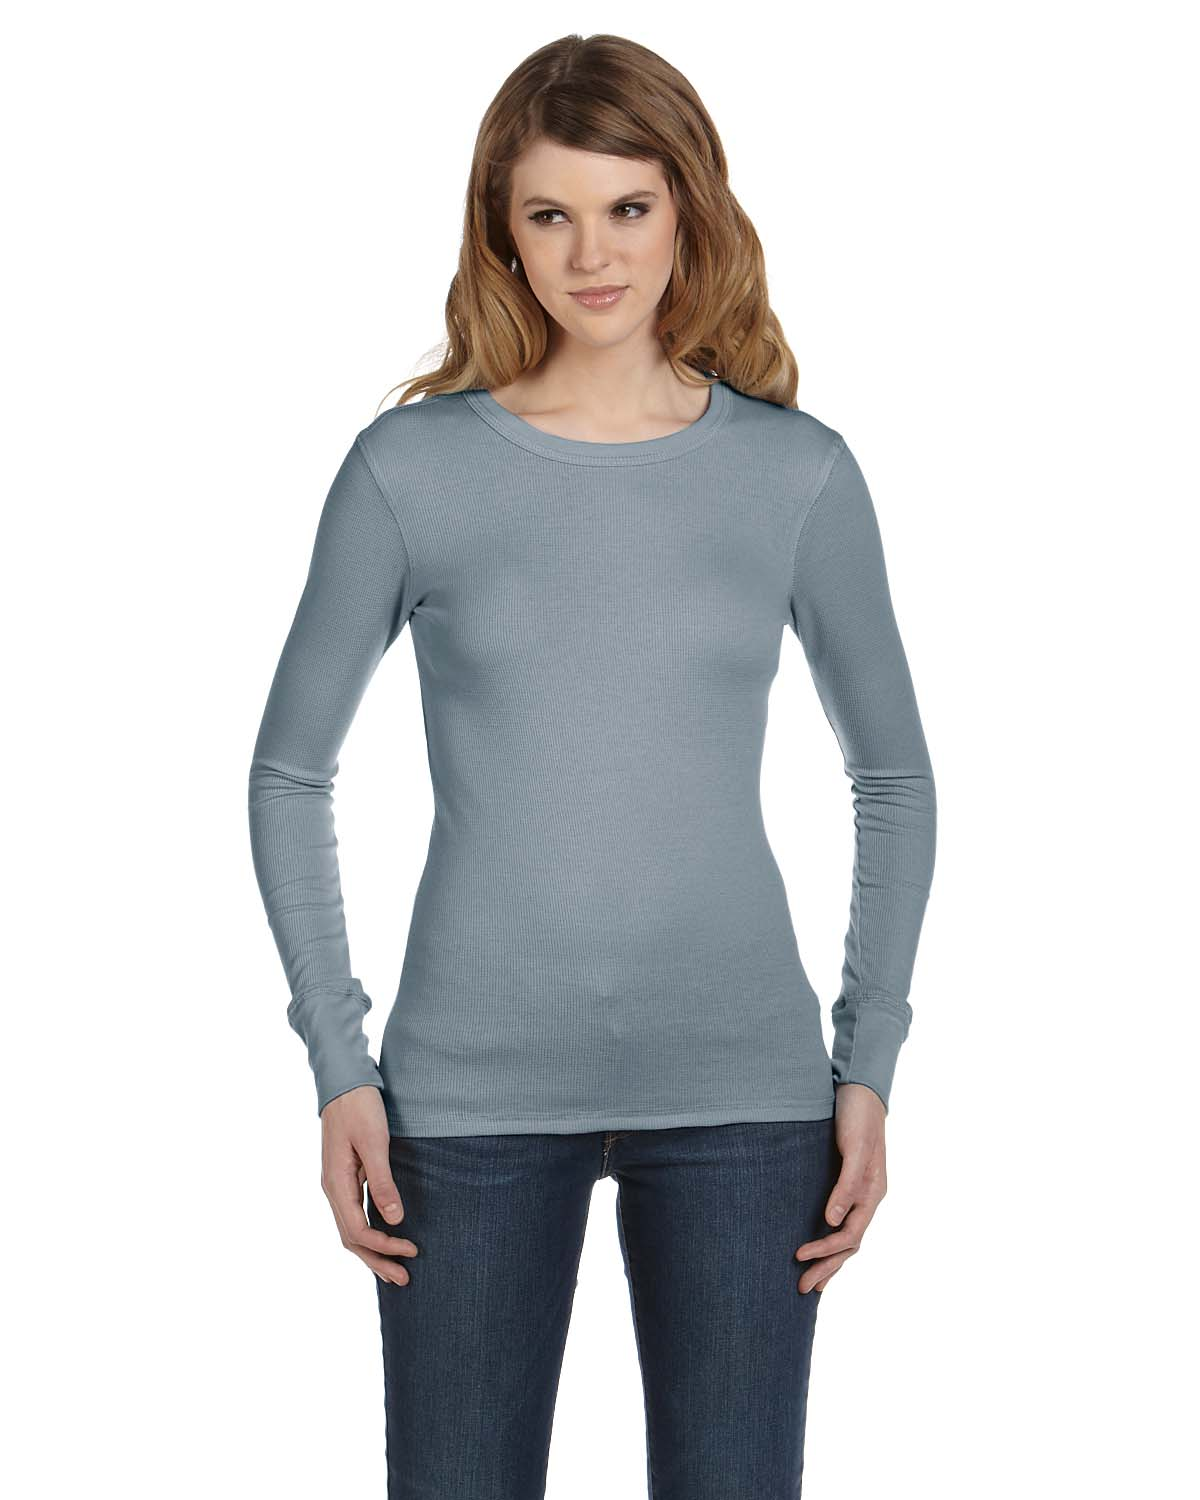 Bella Ladies Thermal Long-Sleeve T-Shirt